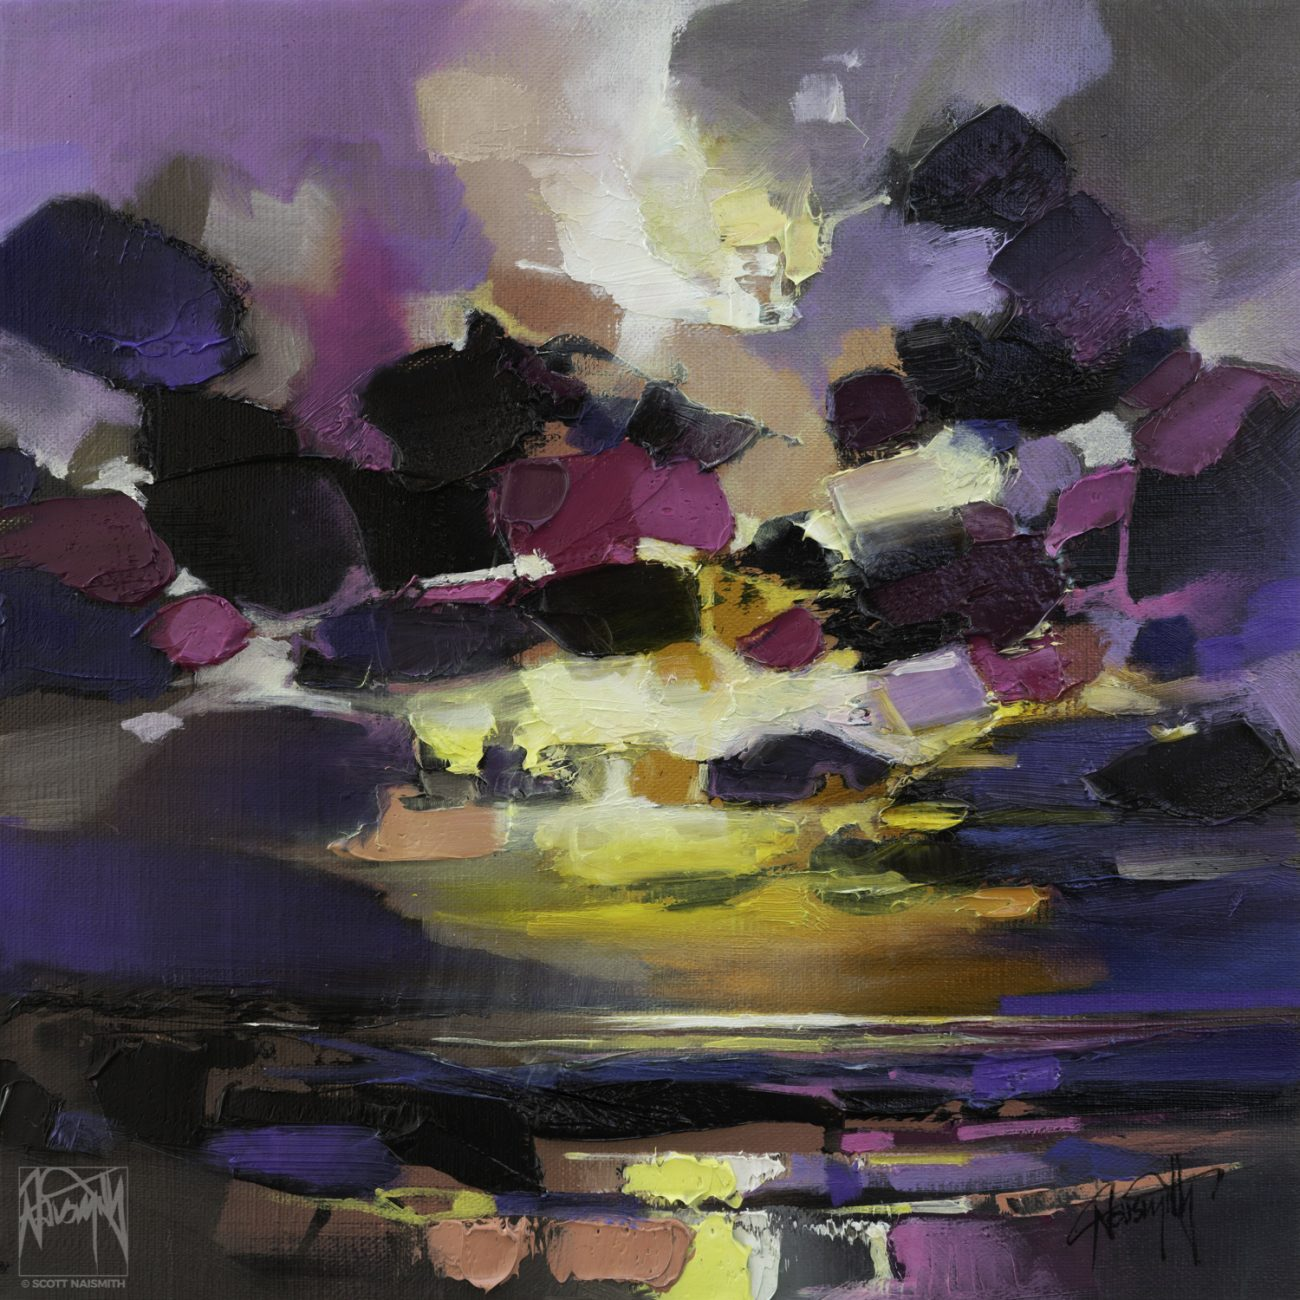 'Dark Matter Study 2' 30 x 30cm oil on linen by Scott Naismith